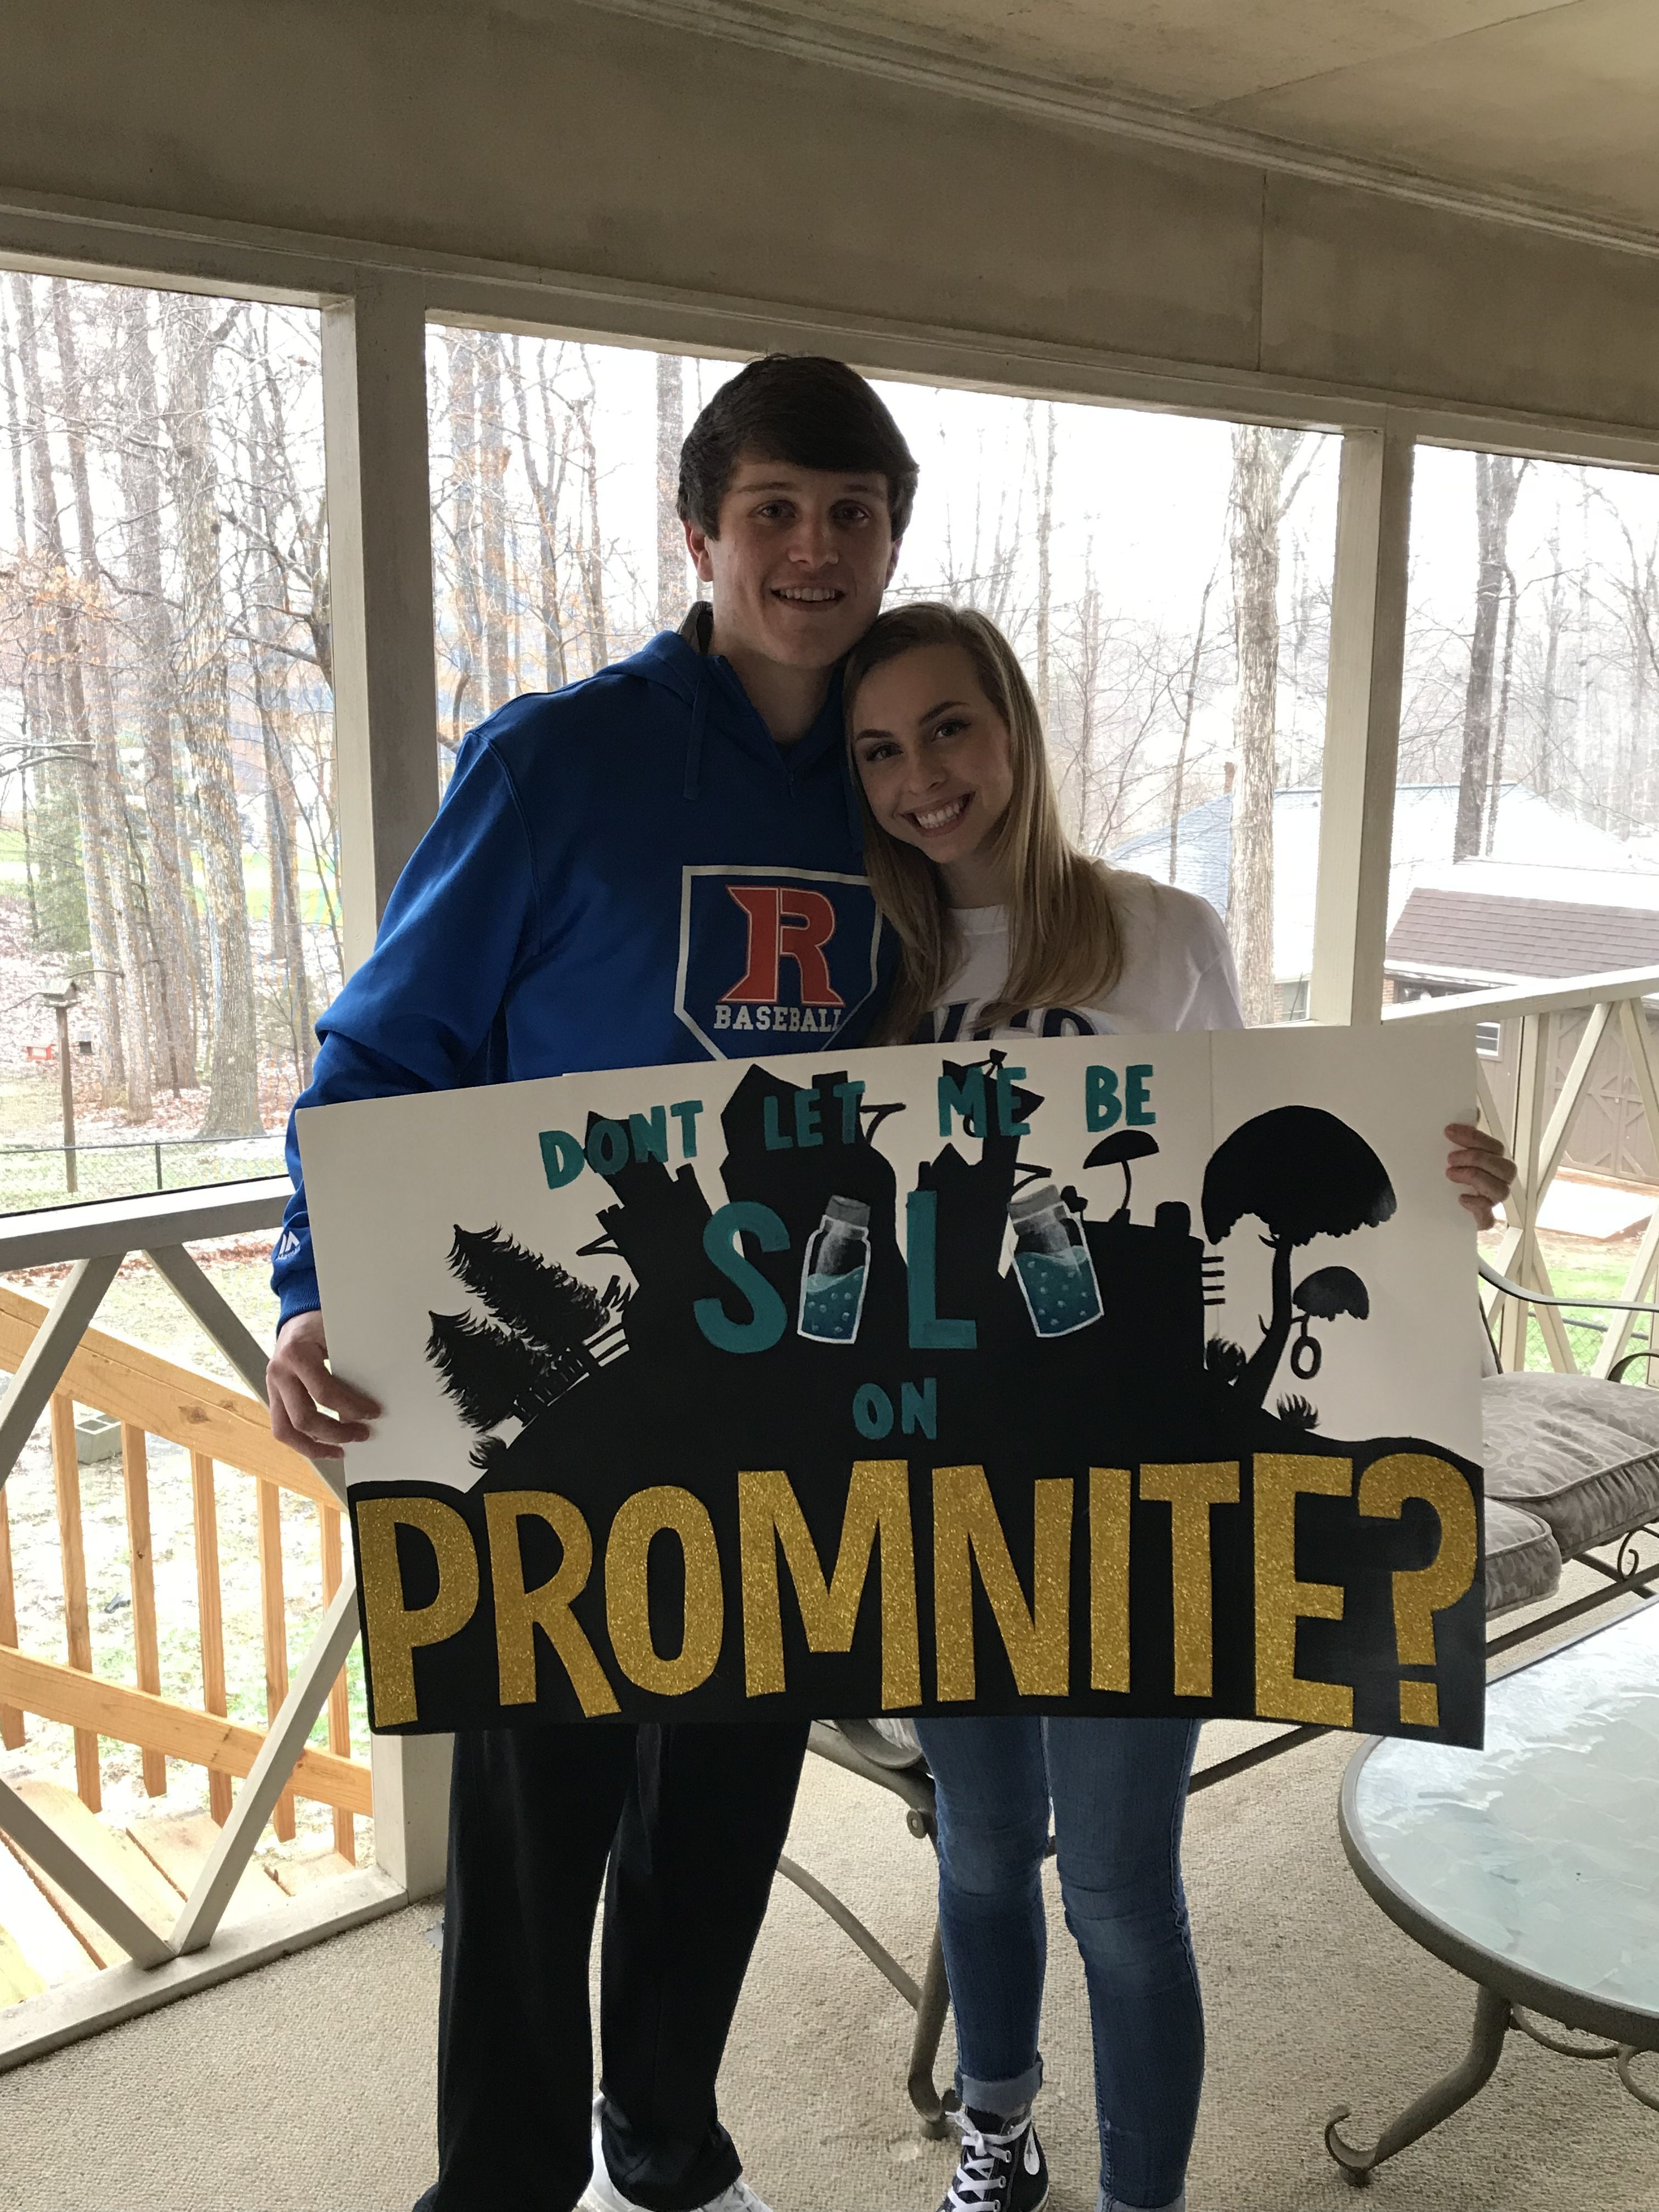 Fortnite themed promposal #fortnite #videogames #promposal #prom #bestfriendprompictures #promposalideas #hocoproposalsideasboyfriends